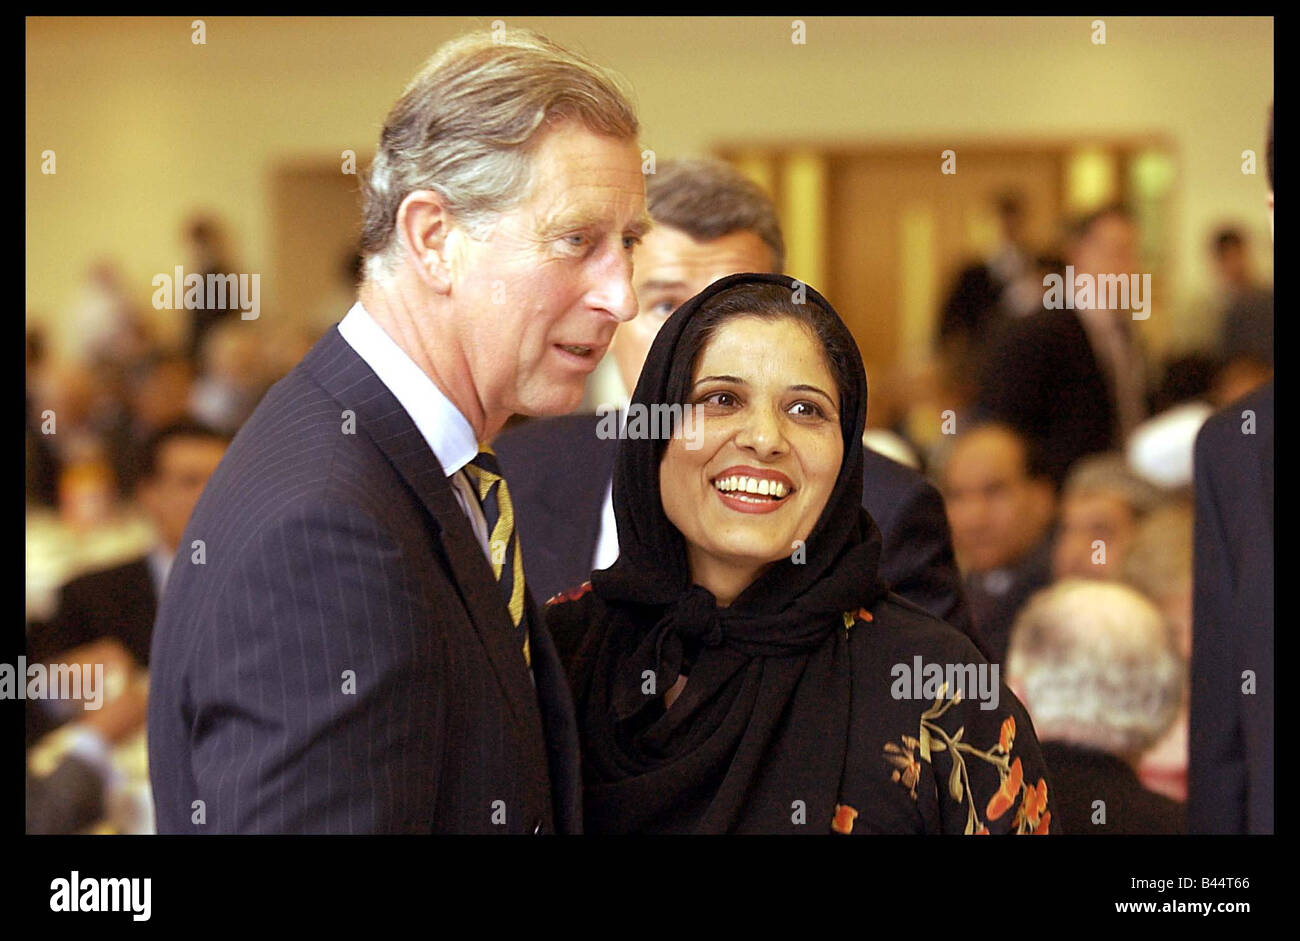 Prince Charles June 2003 Visiting the Central Mosque in Glasgow today as part of his visit to Scotland - Stock Image